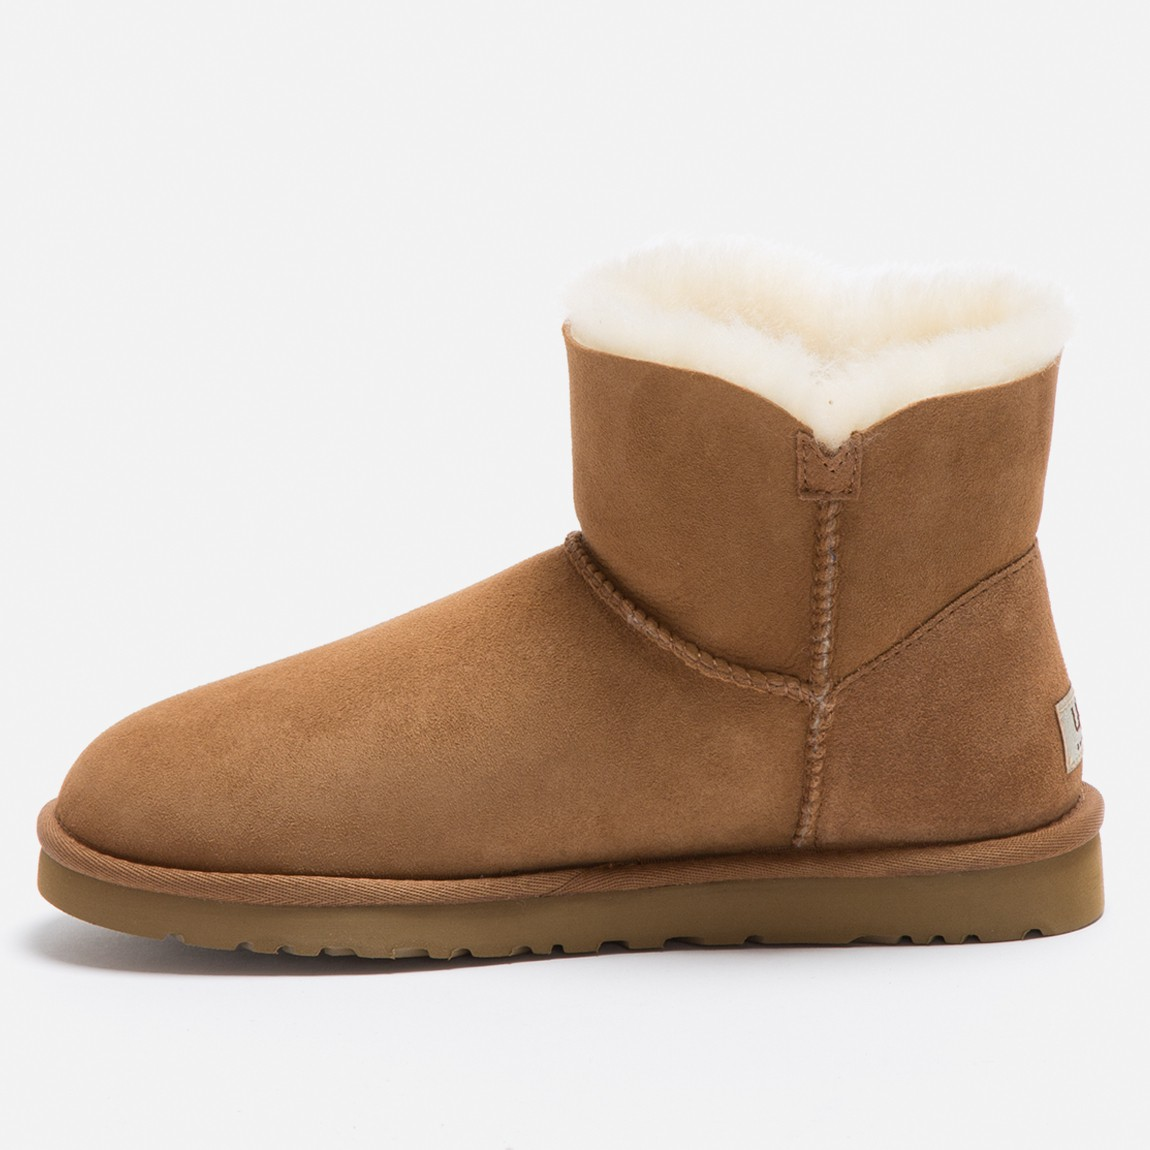 Uggs coupon code 2019